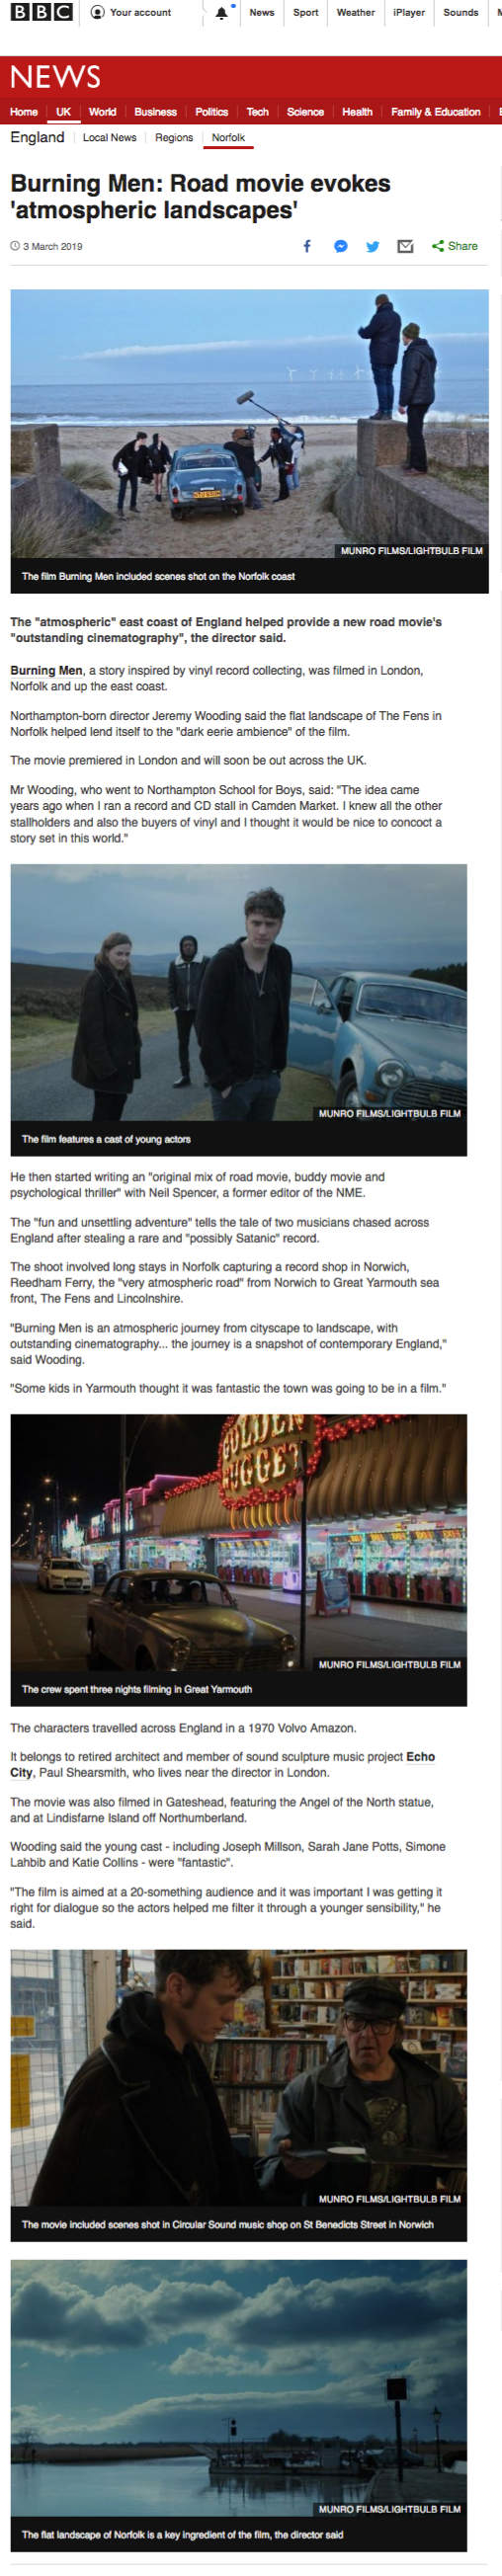 Report on filming in East Anglia